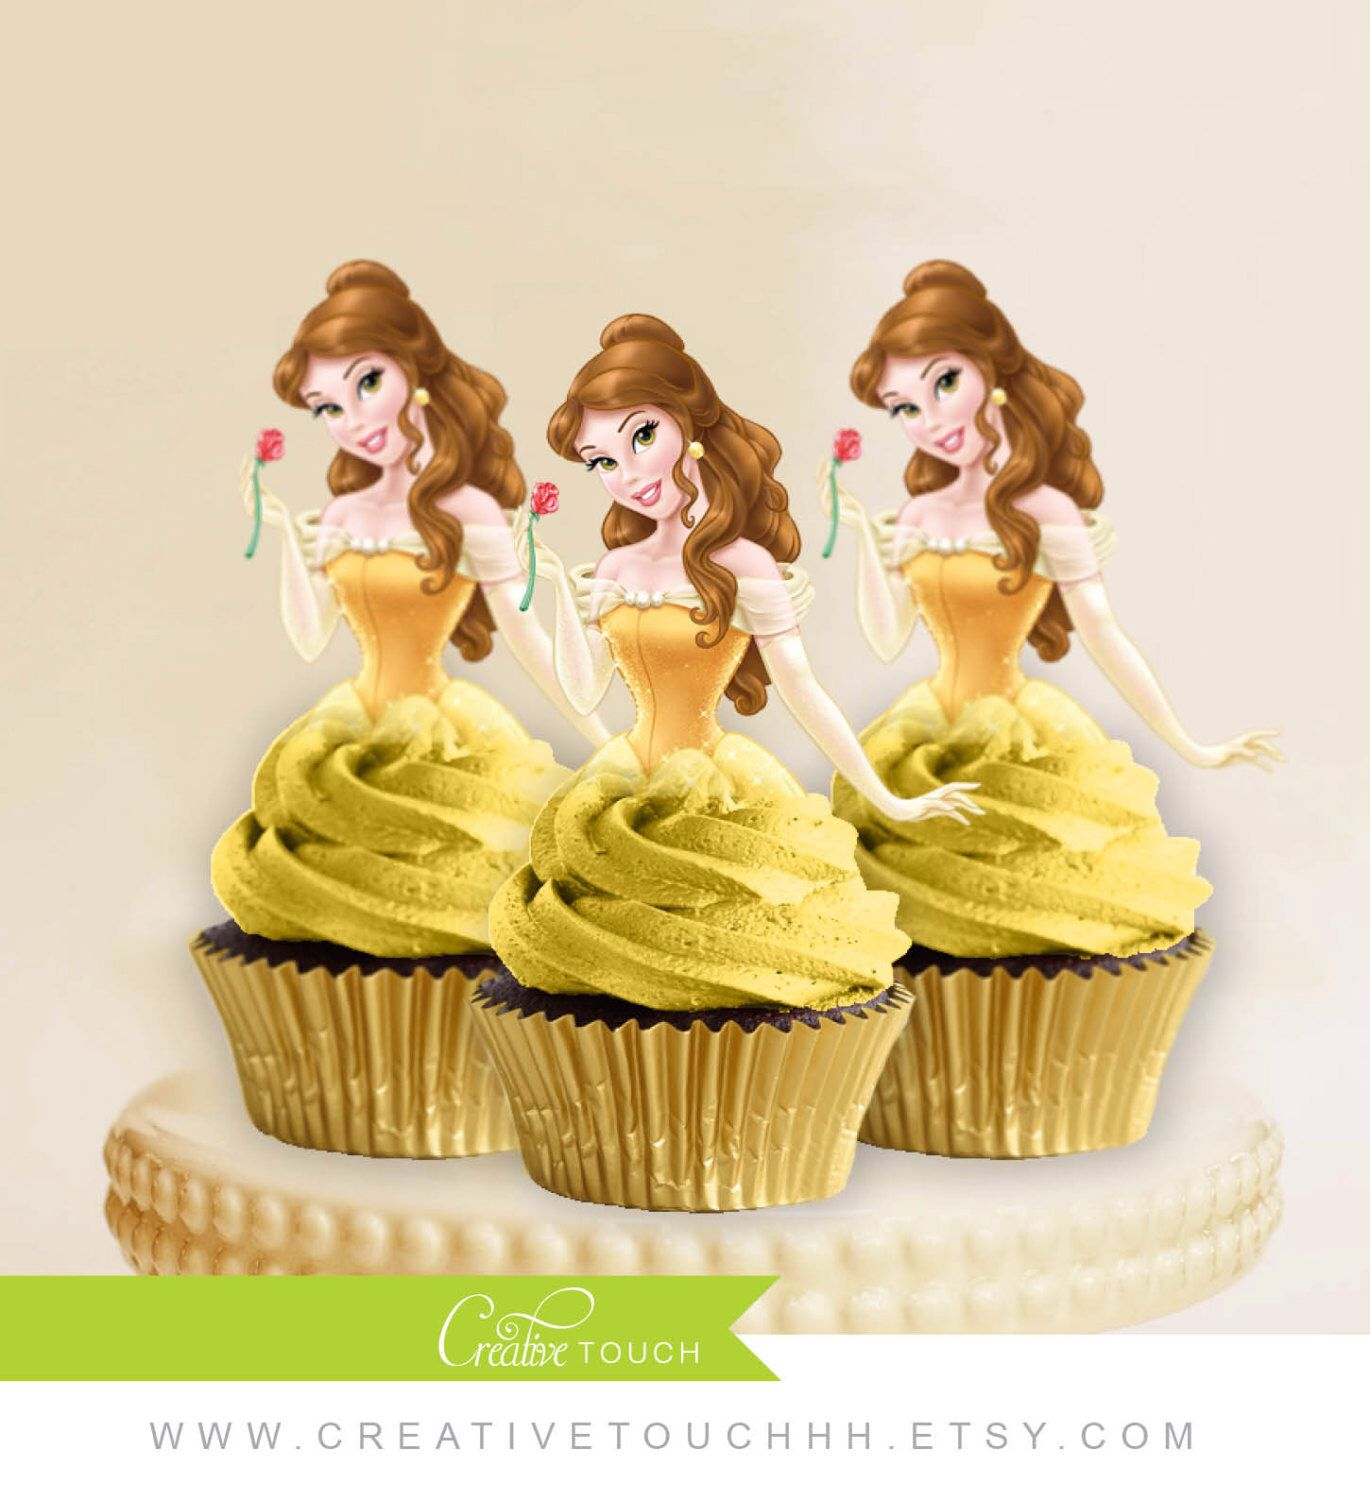 Belle Cupcake Toppers, Princess Belle, Beauty And The Beast, Disney Princess, Belle Birthday, Belle Party, Belle Cake Topper, Decoration by CreativeTouchhh on Etsy https://www.etsy.com/listing/241786047/belle-cupcake-toppers-princess-belle